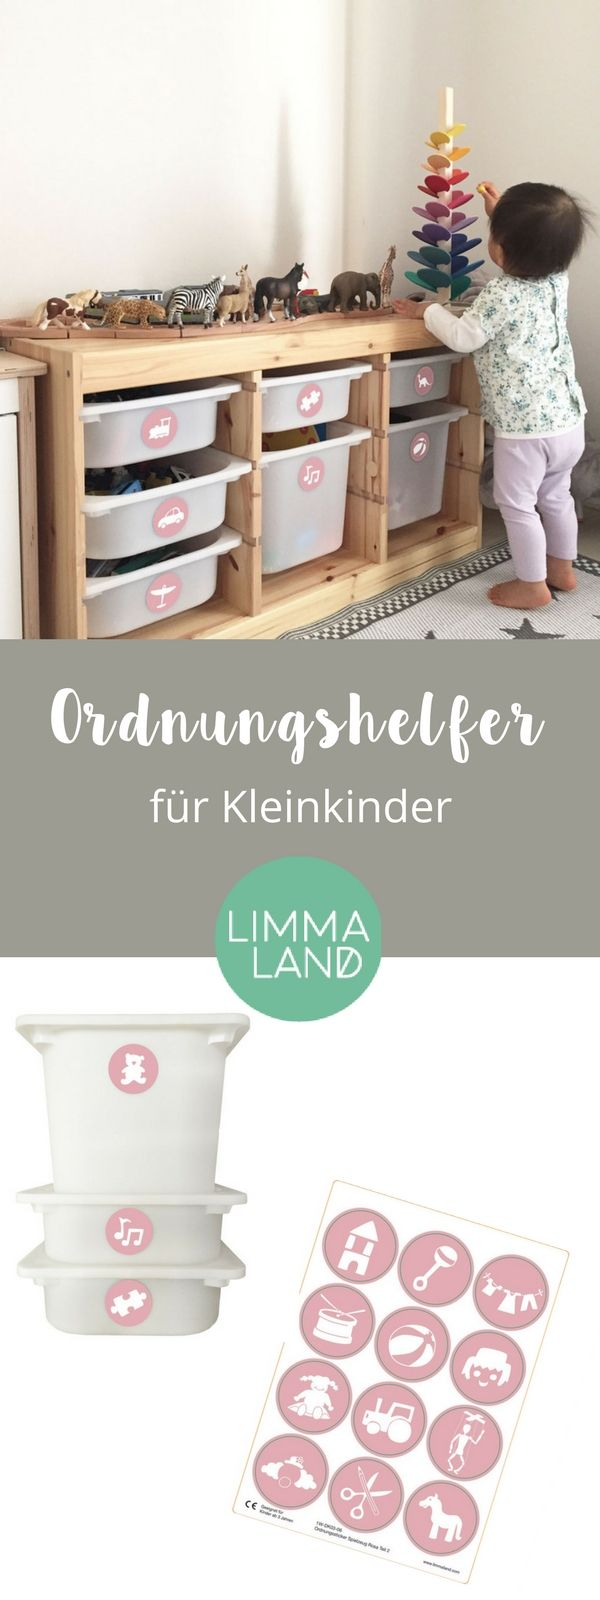 ordnung im kinderzimmer f r all das spielzeug ist nicht einfach mit diesen ordnungsstickern im. Black Bedroom Furniture Sets. Home Design Ideas